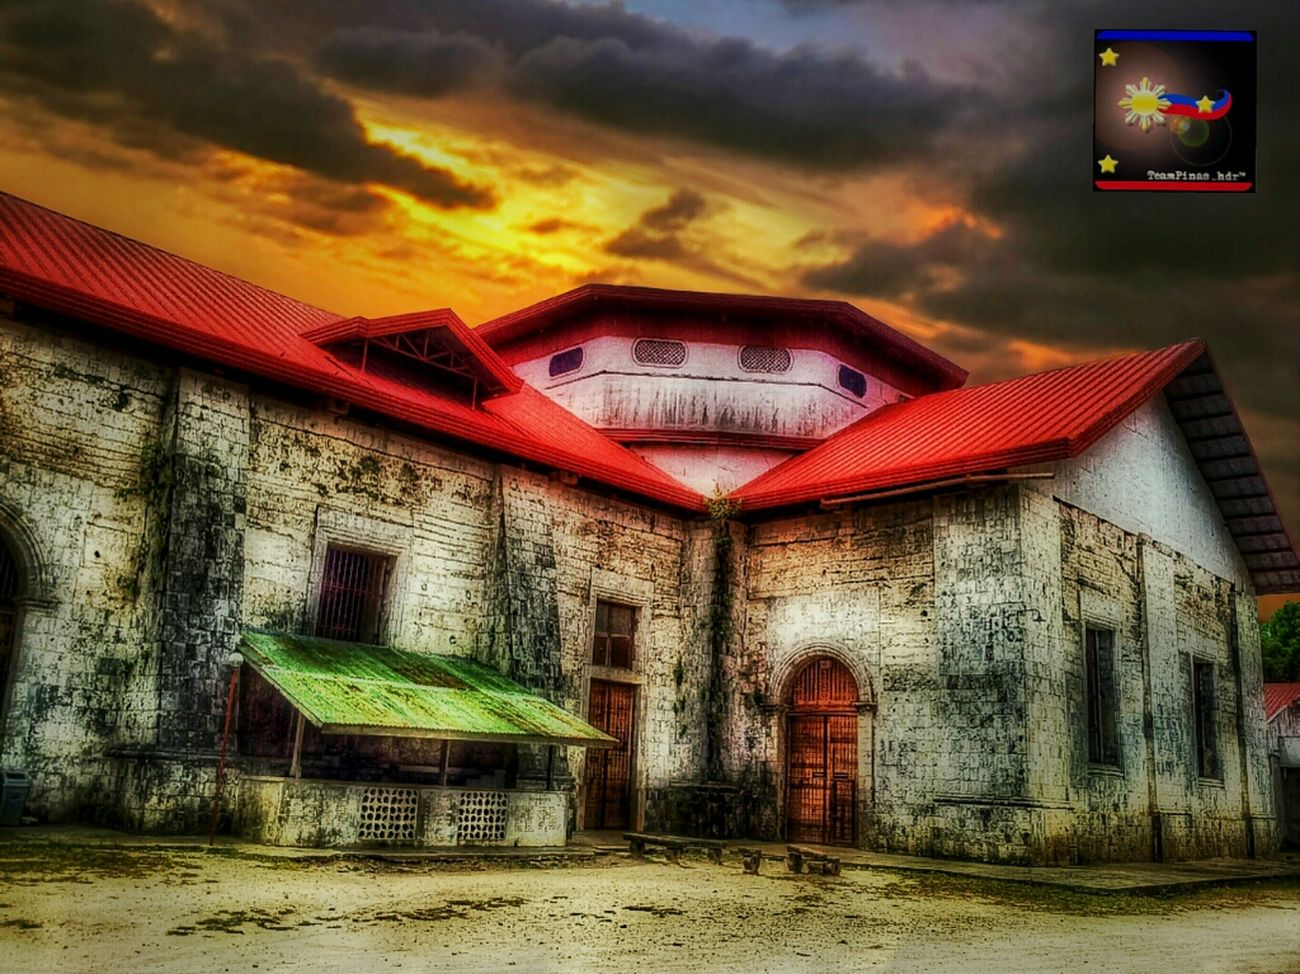 Original Pic By @teampinas_hdr